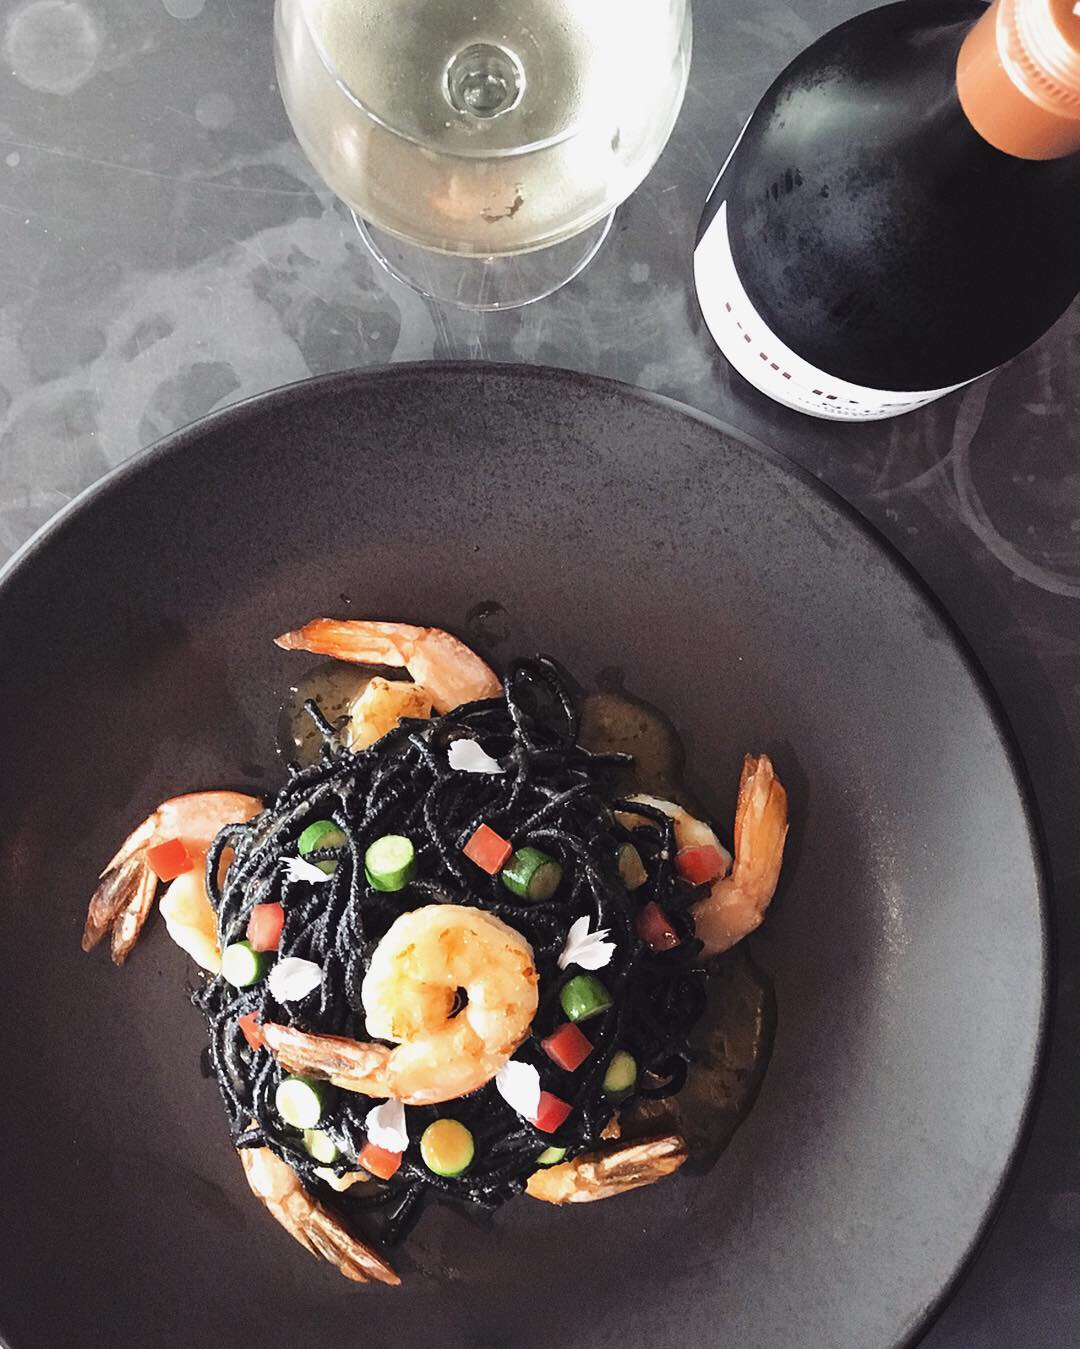 13-19 February - Luxurious squid-ink-infused spaghetti with prawns, courgette, tomato and a sauce of burned butter and garlic.Be adventurous! Fortuna audaces iuvat!